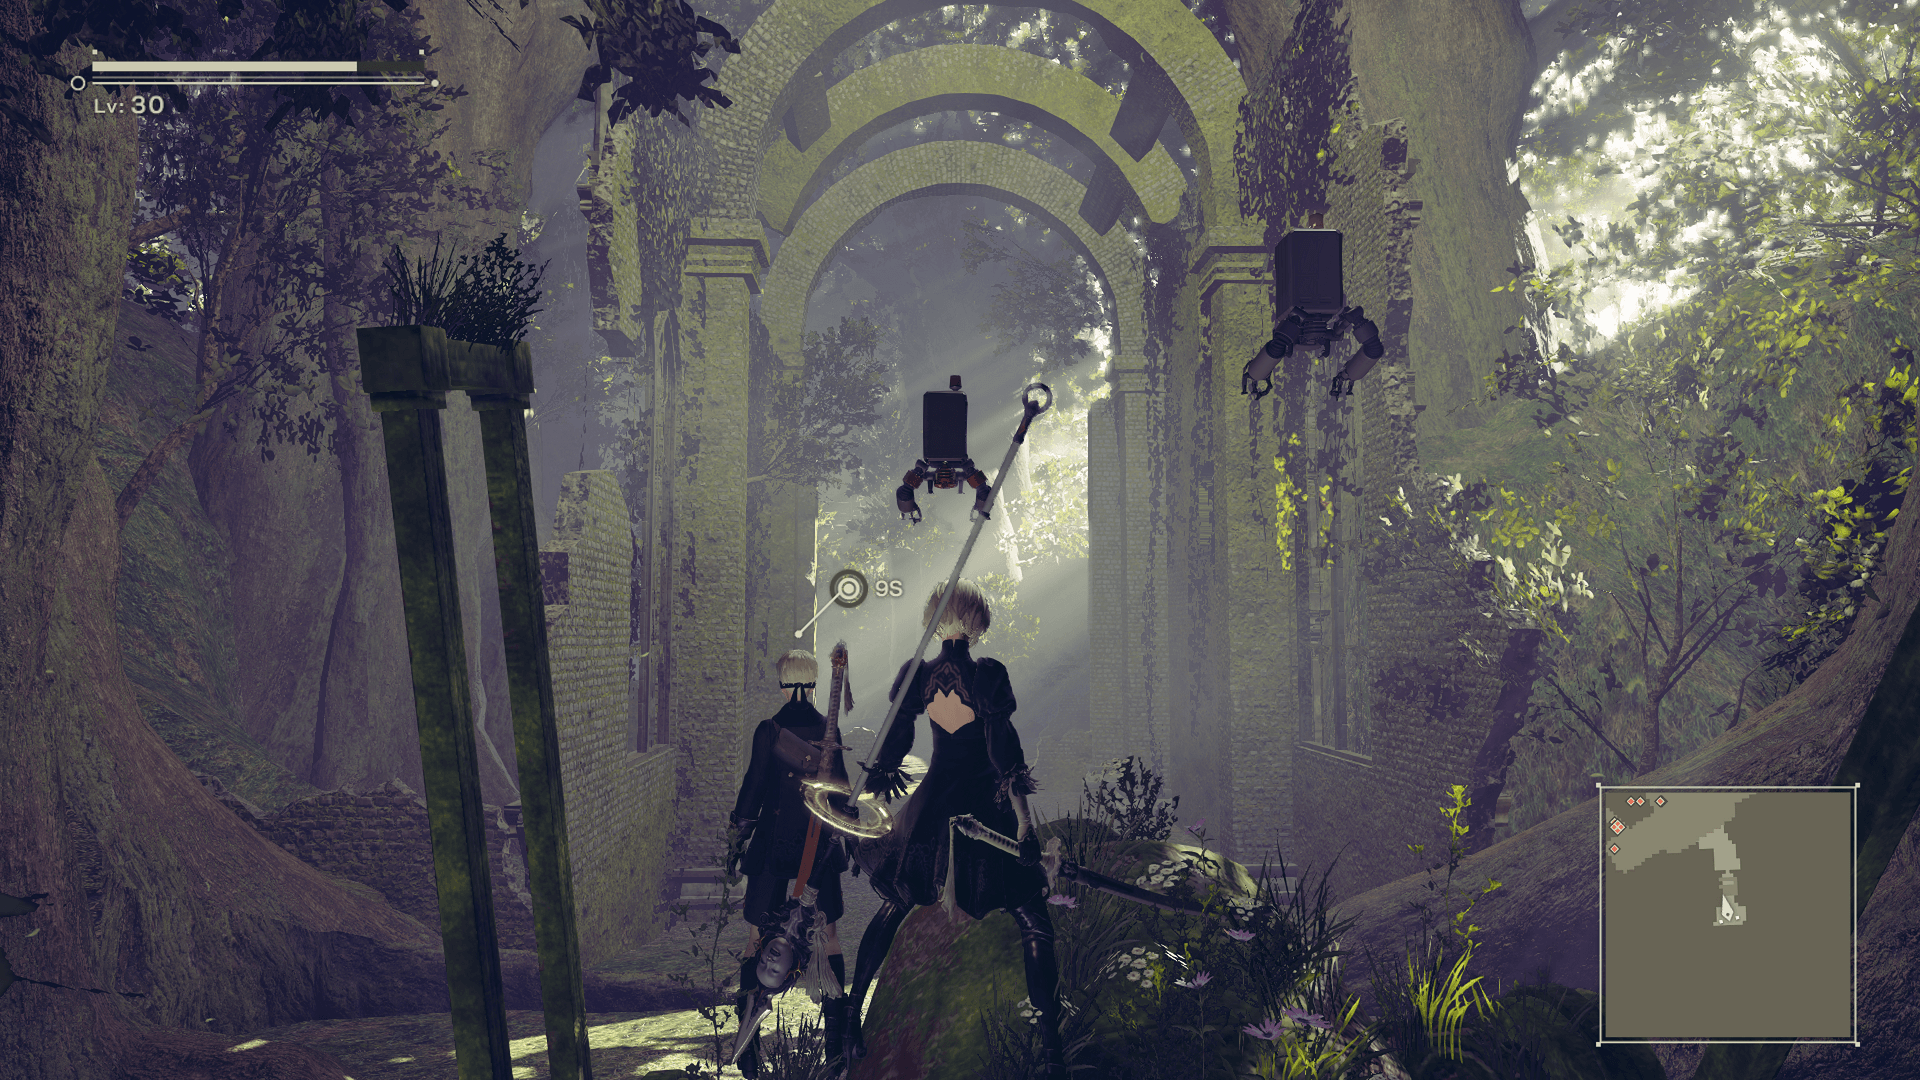 nier automata 2b wallpaper 1920x1080